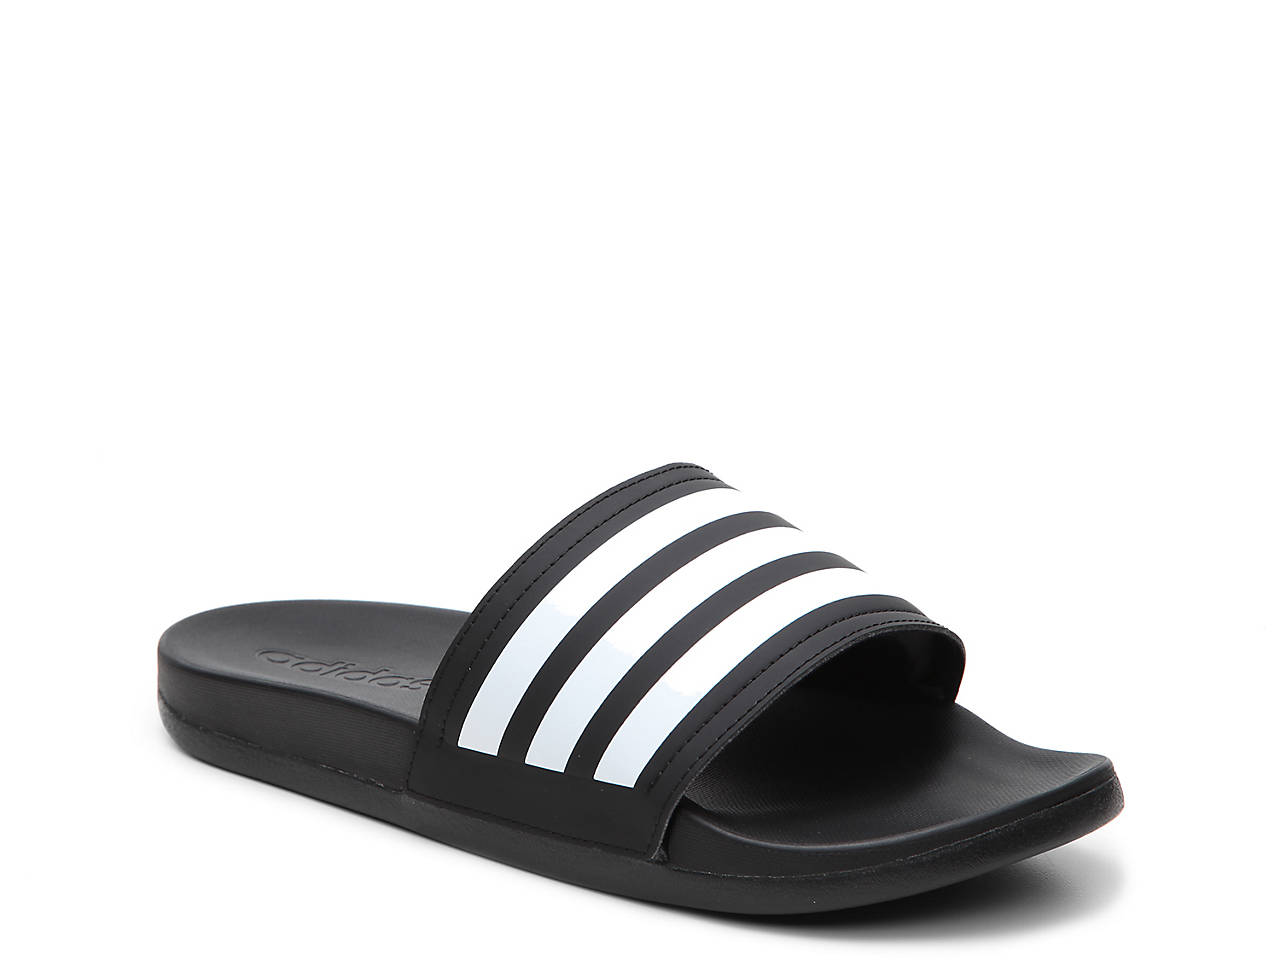 096122f8f5b adidas Adilette Cloudfoam Ultra Stripes Slide Sandal - Women s ...